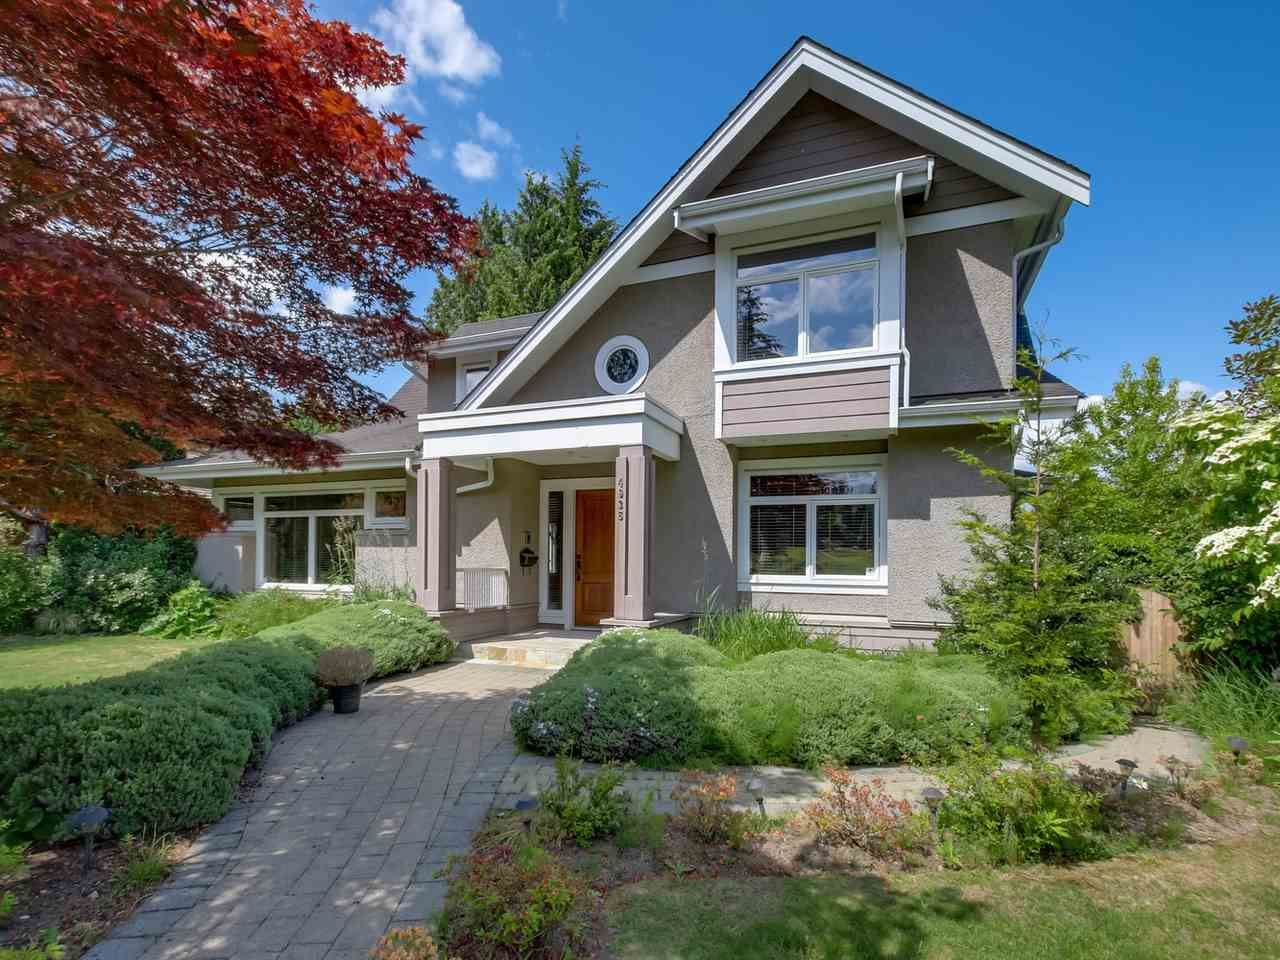 """Main Photo: 4935 W COLLEGE HIGHROAD Avenue in Vancouver: University VW House for sale in """"Little Australia"""" (Vancouver West)  : MLS®# R2547740"""